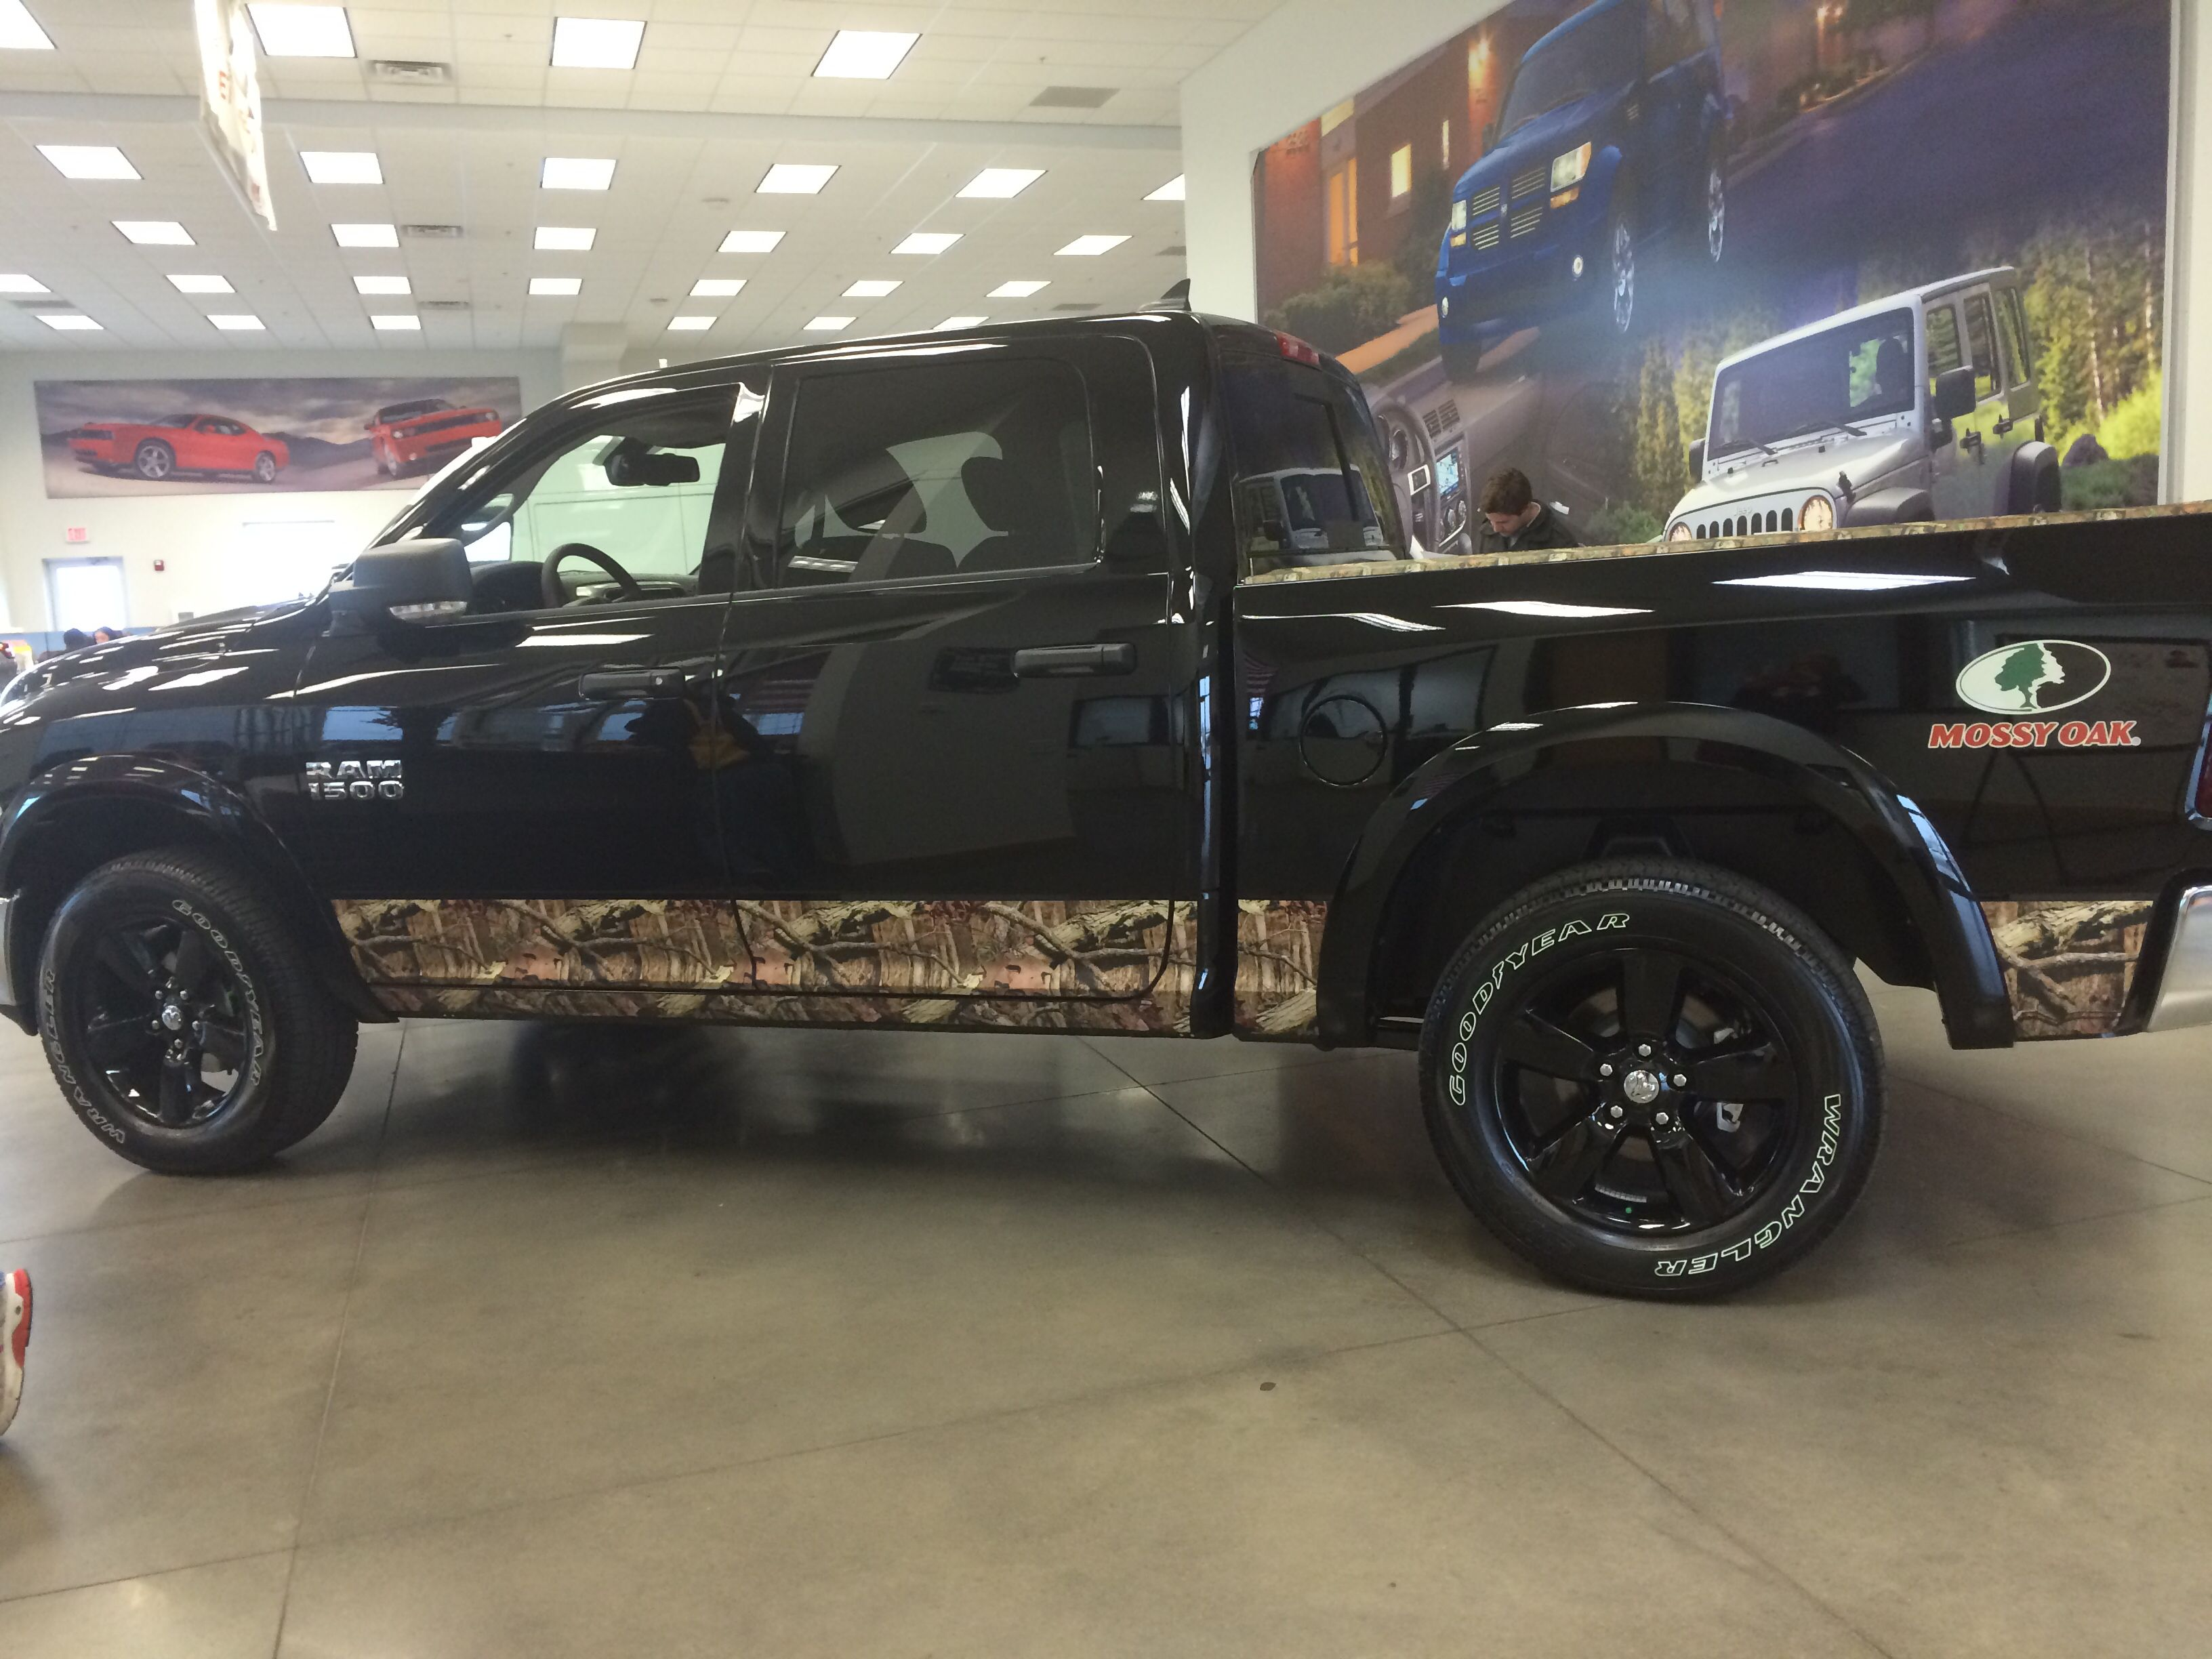 Camo wrap now this is a truck